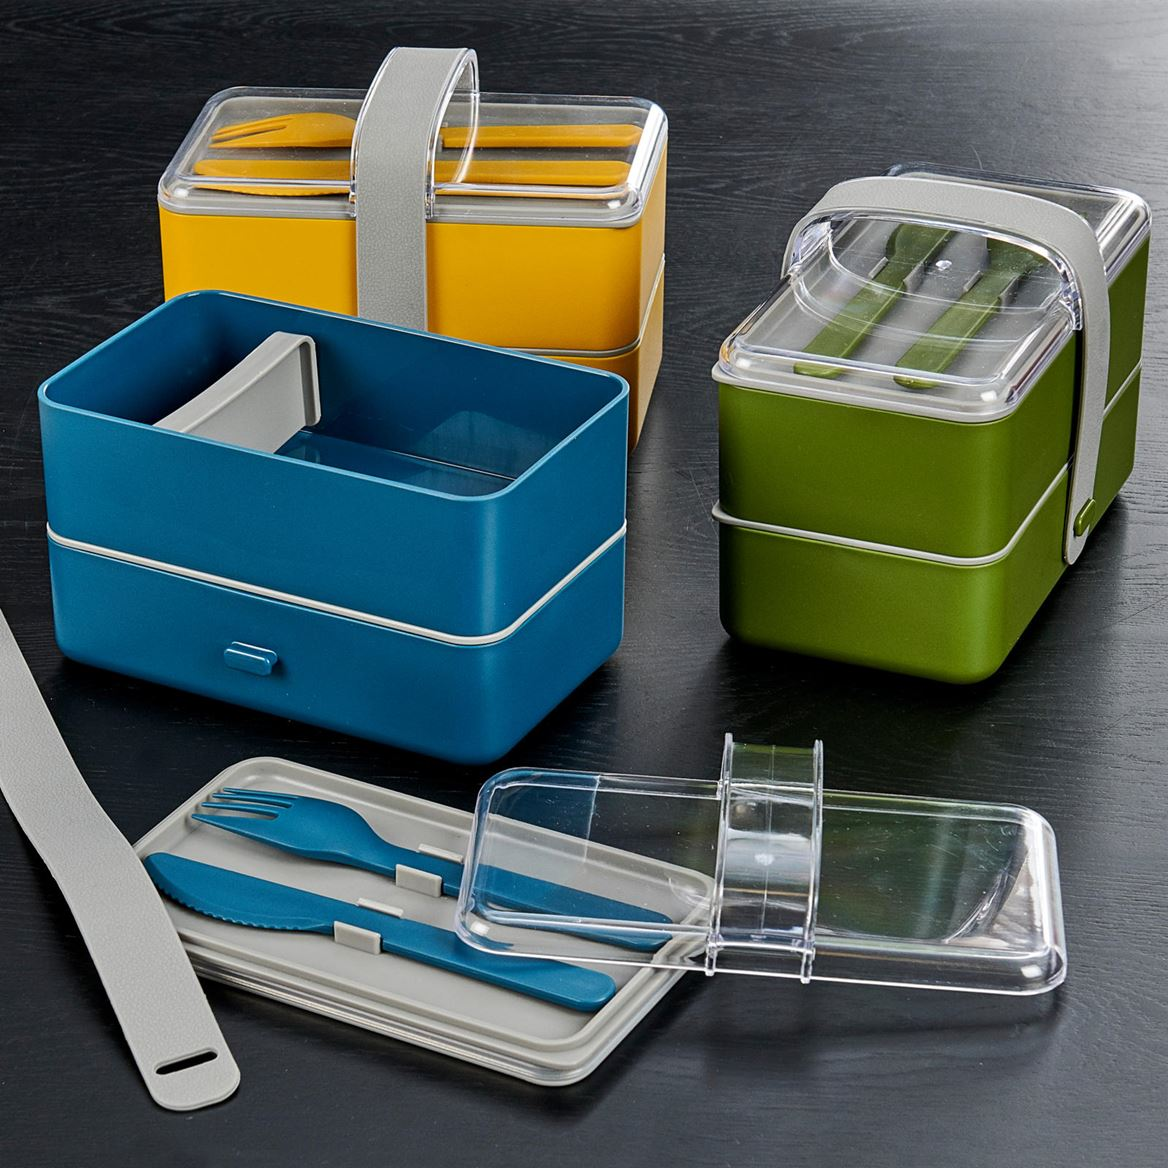 LUNCHTIME Lancheira com talheres 4 cores verde, azul, ocre, . H 13,5 x W 17 x D 10 cm_lunchtime-lancheira-com-talheres-4-cores-verde,-azul,-ocre,---h-13,5-x-w-17-x-d-10-cm